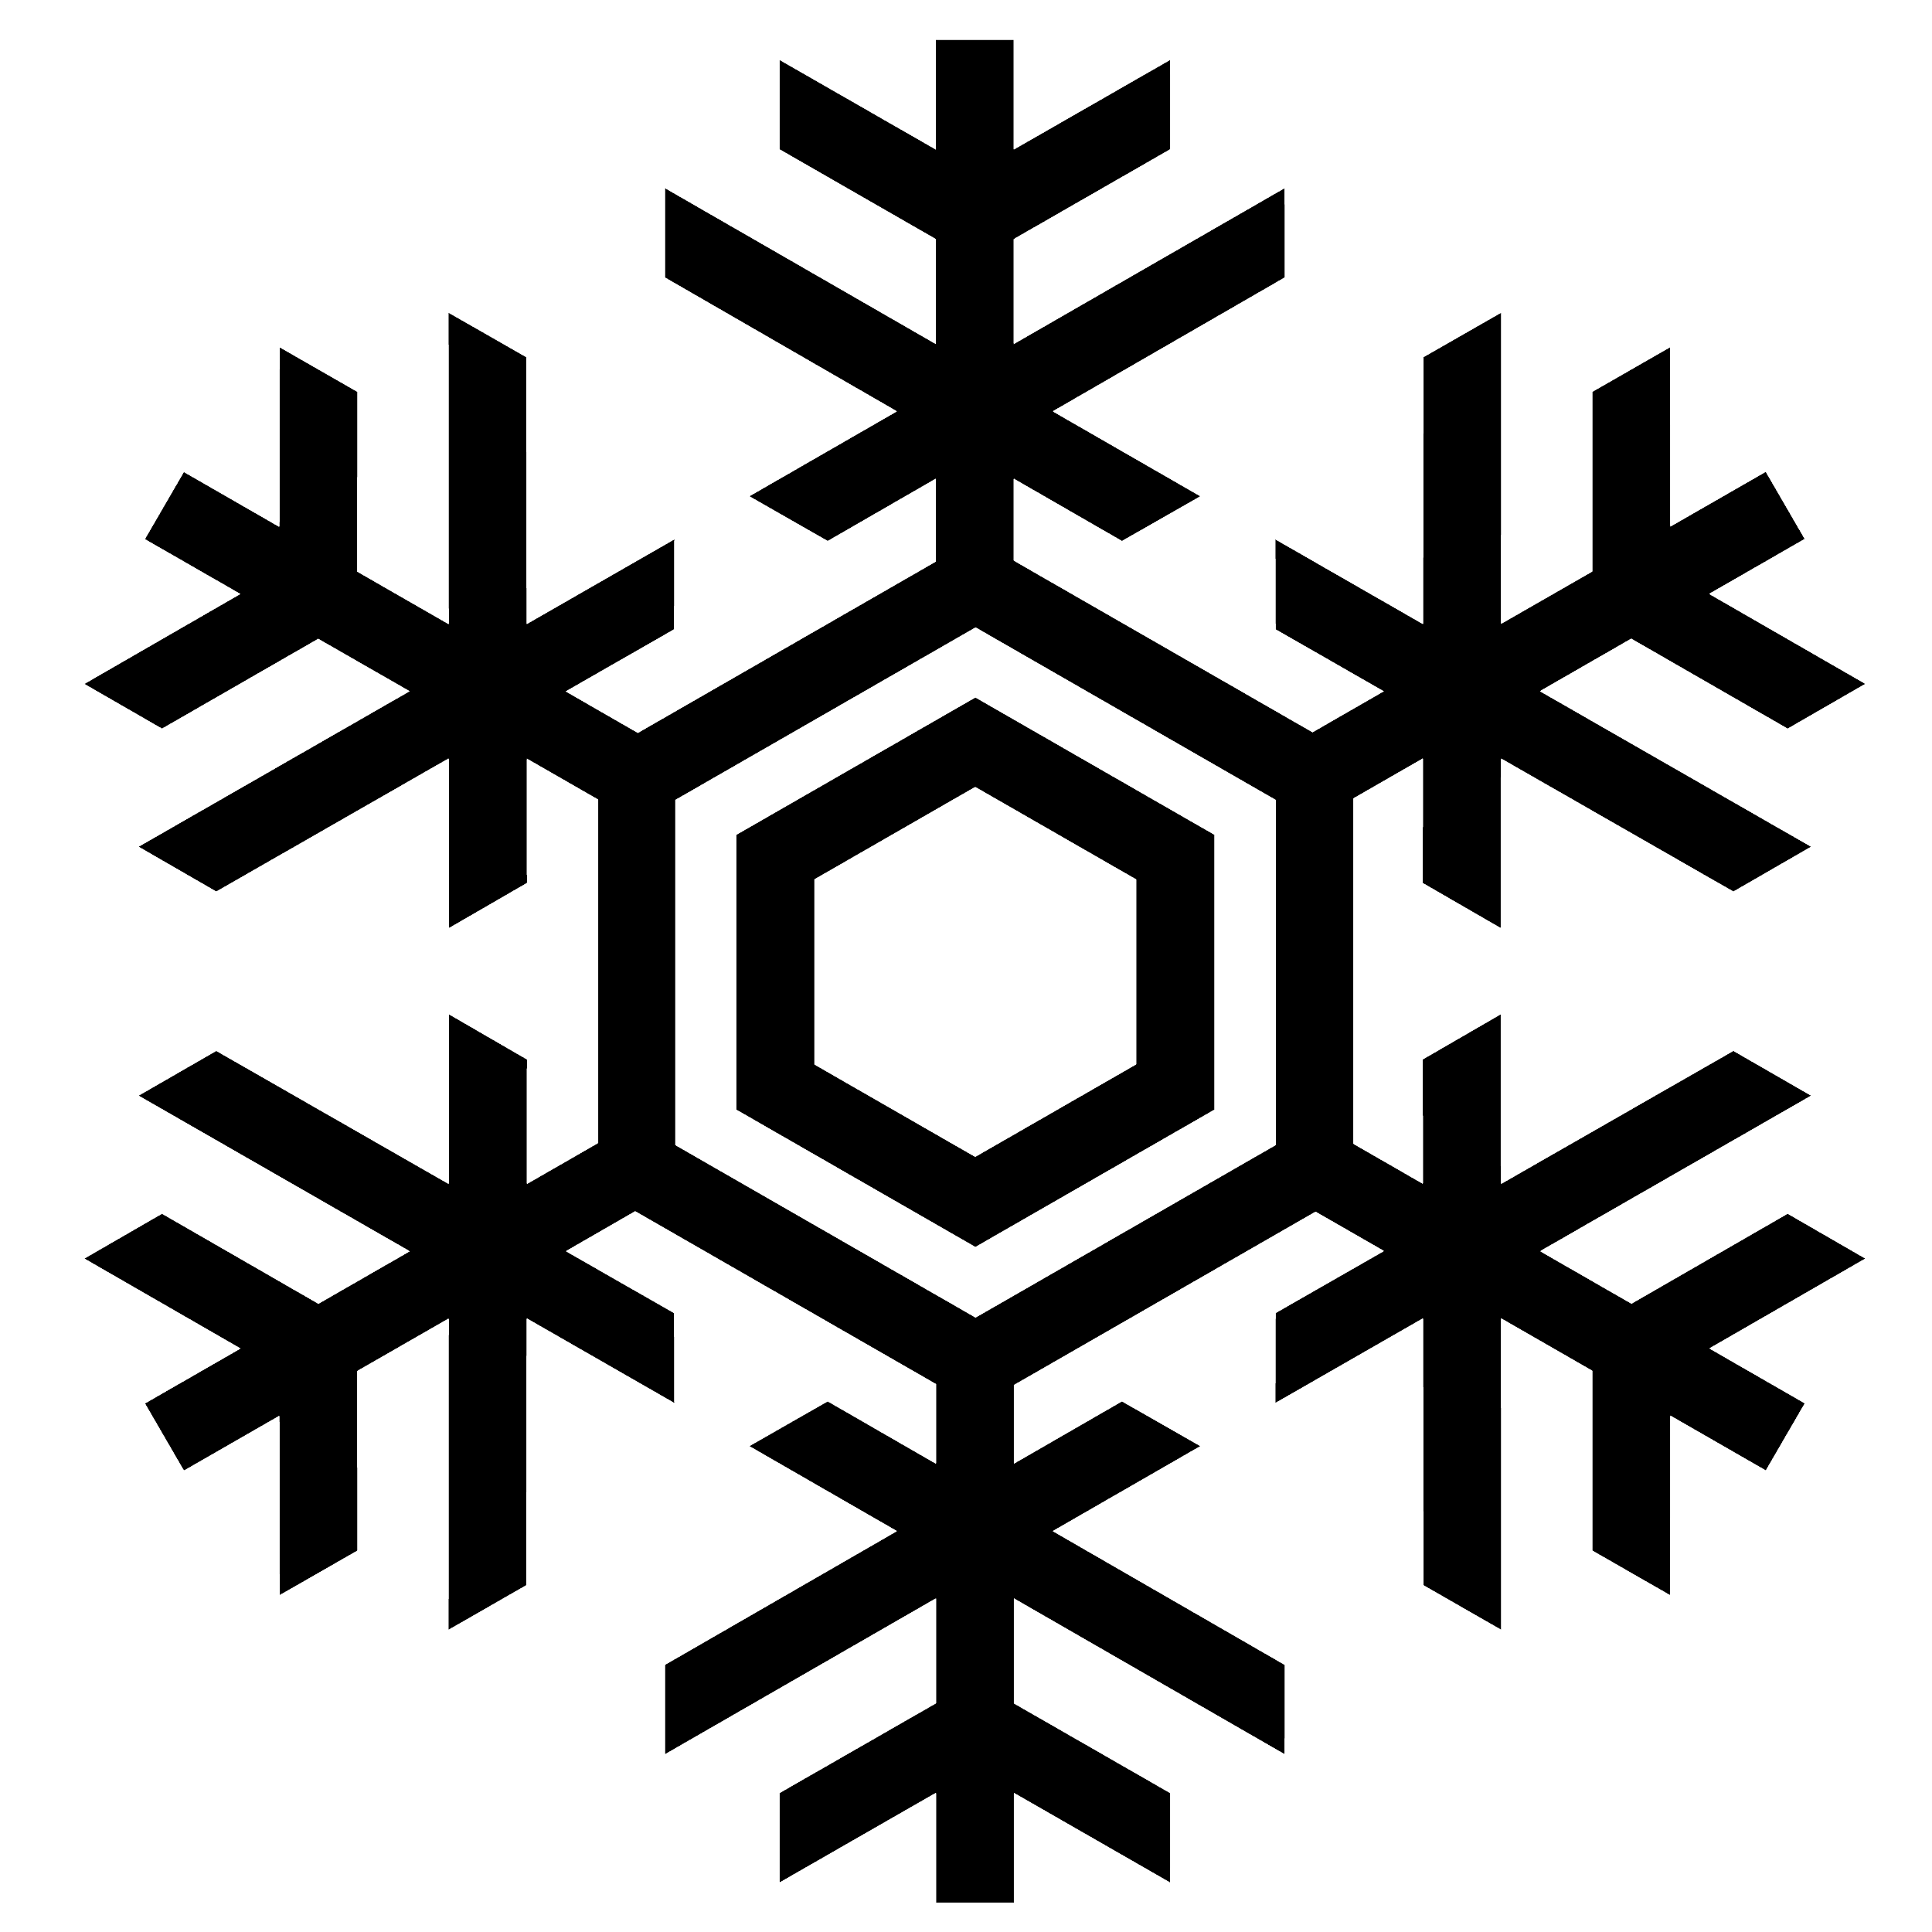 Snowflake black and white background clipart jpg free stock Snowflake silhouette PNG image jpg free stock